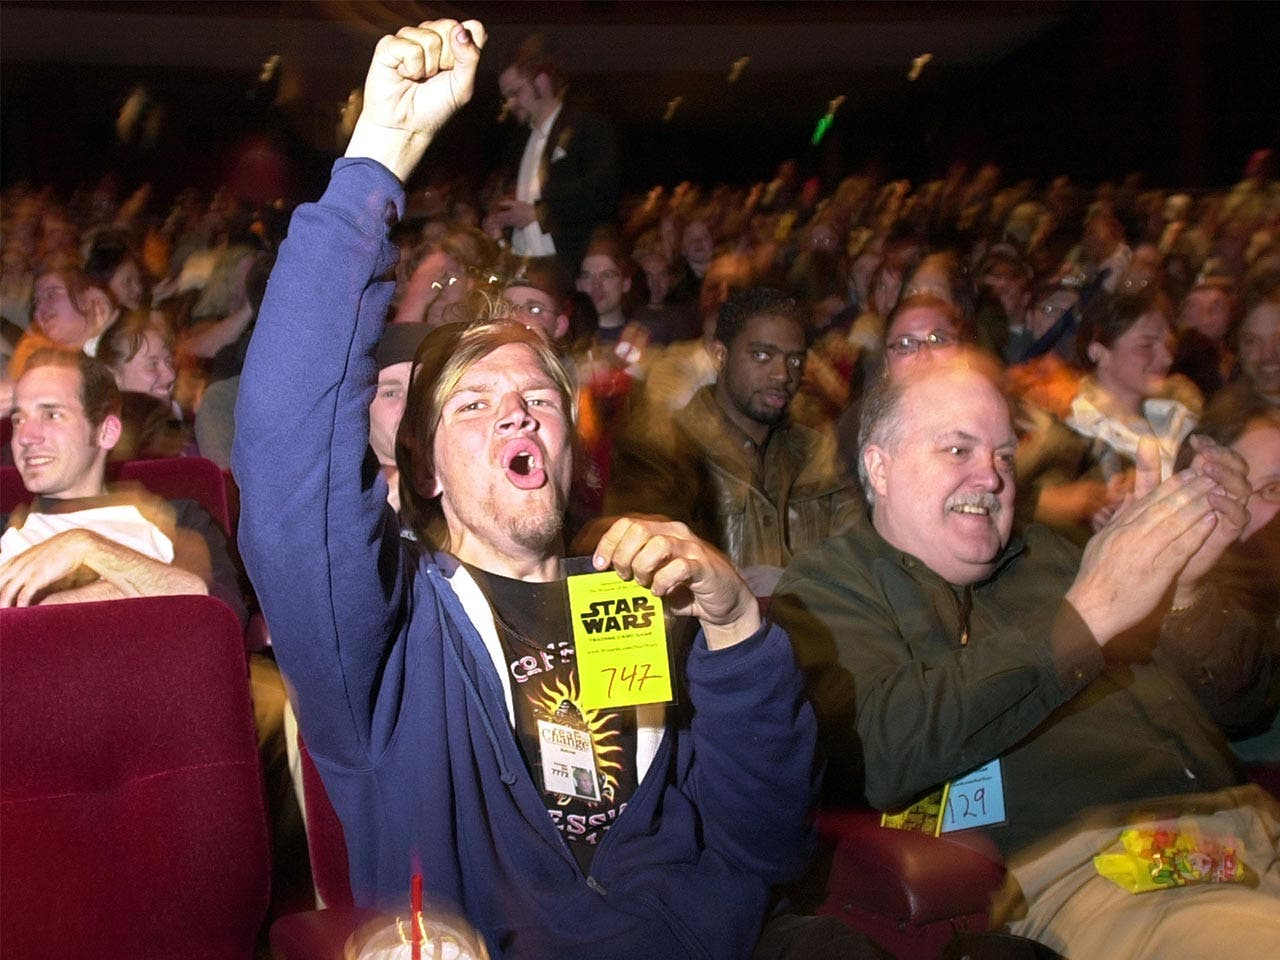 Fan cheering at movie premiere while holding up his numbered ticket